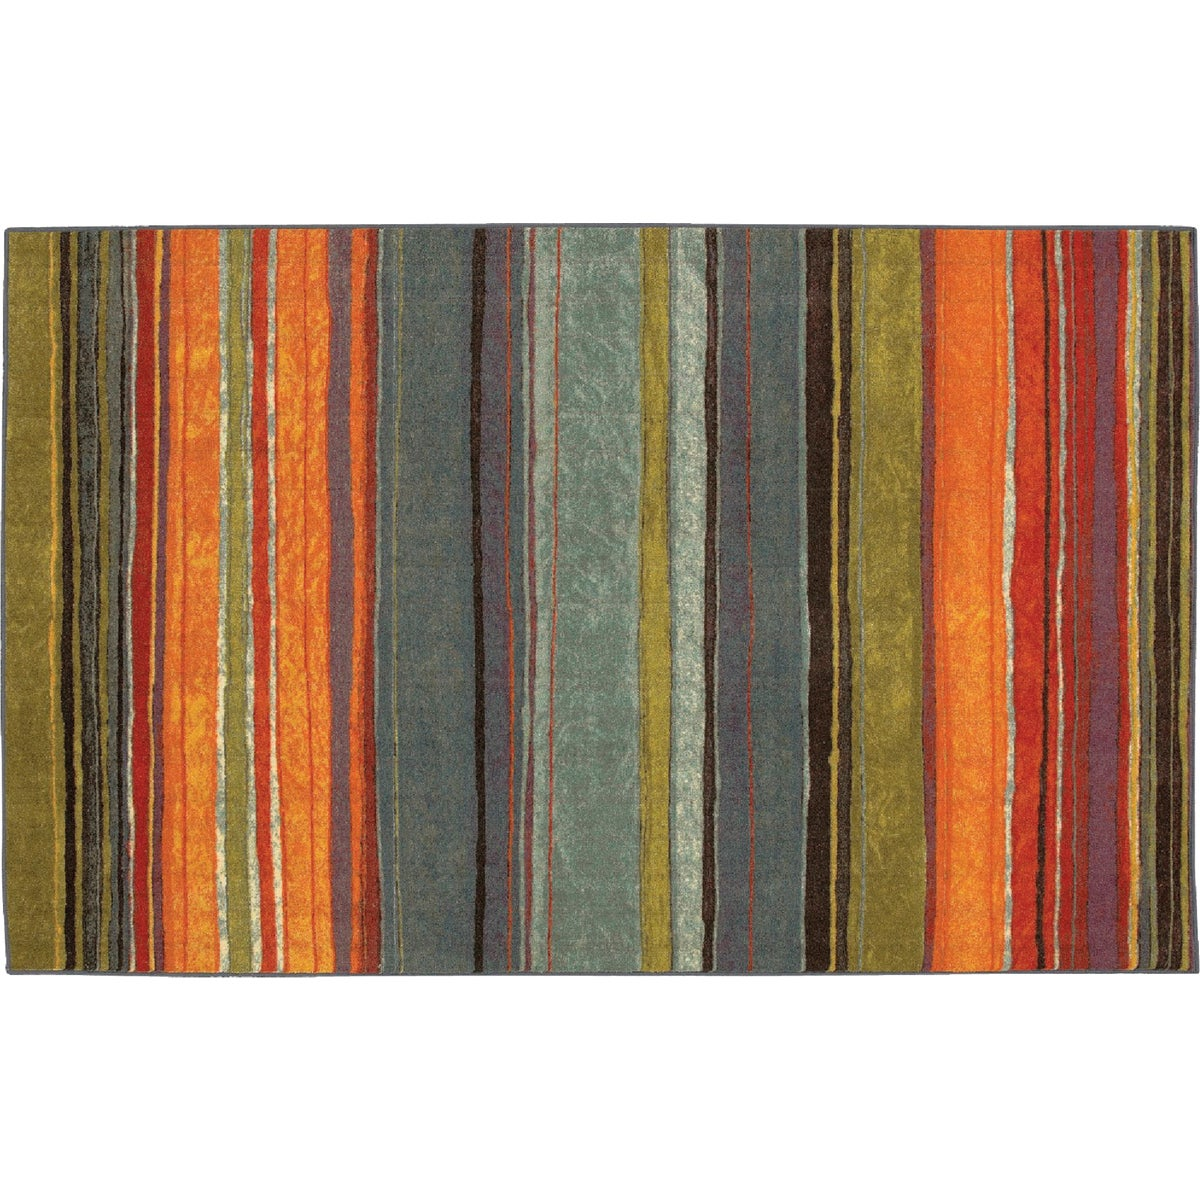 30X46 RAINBOW PRINT RUG - 10474-416-30046 by Mohawk Home Products